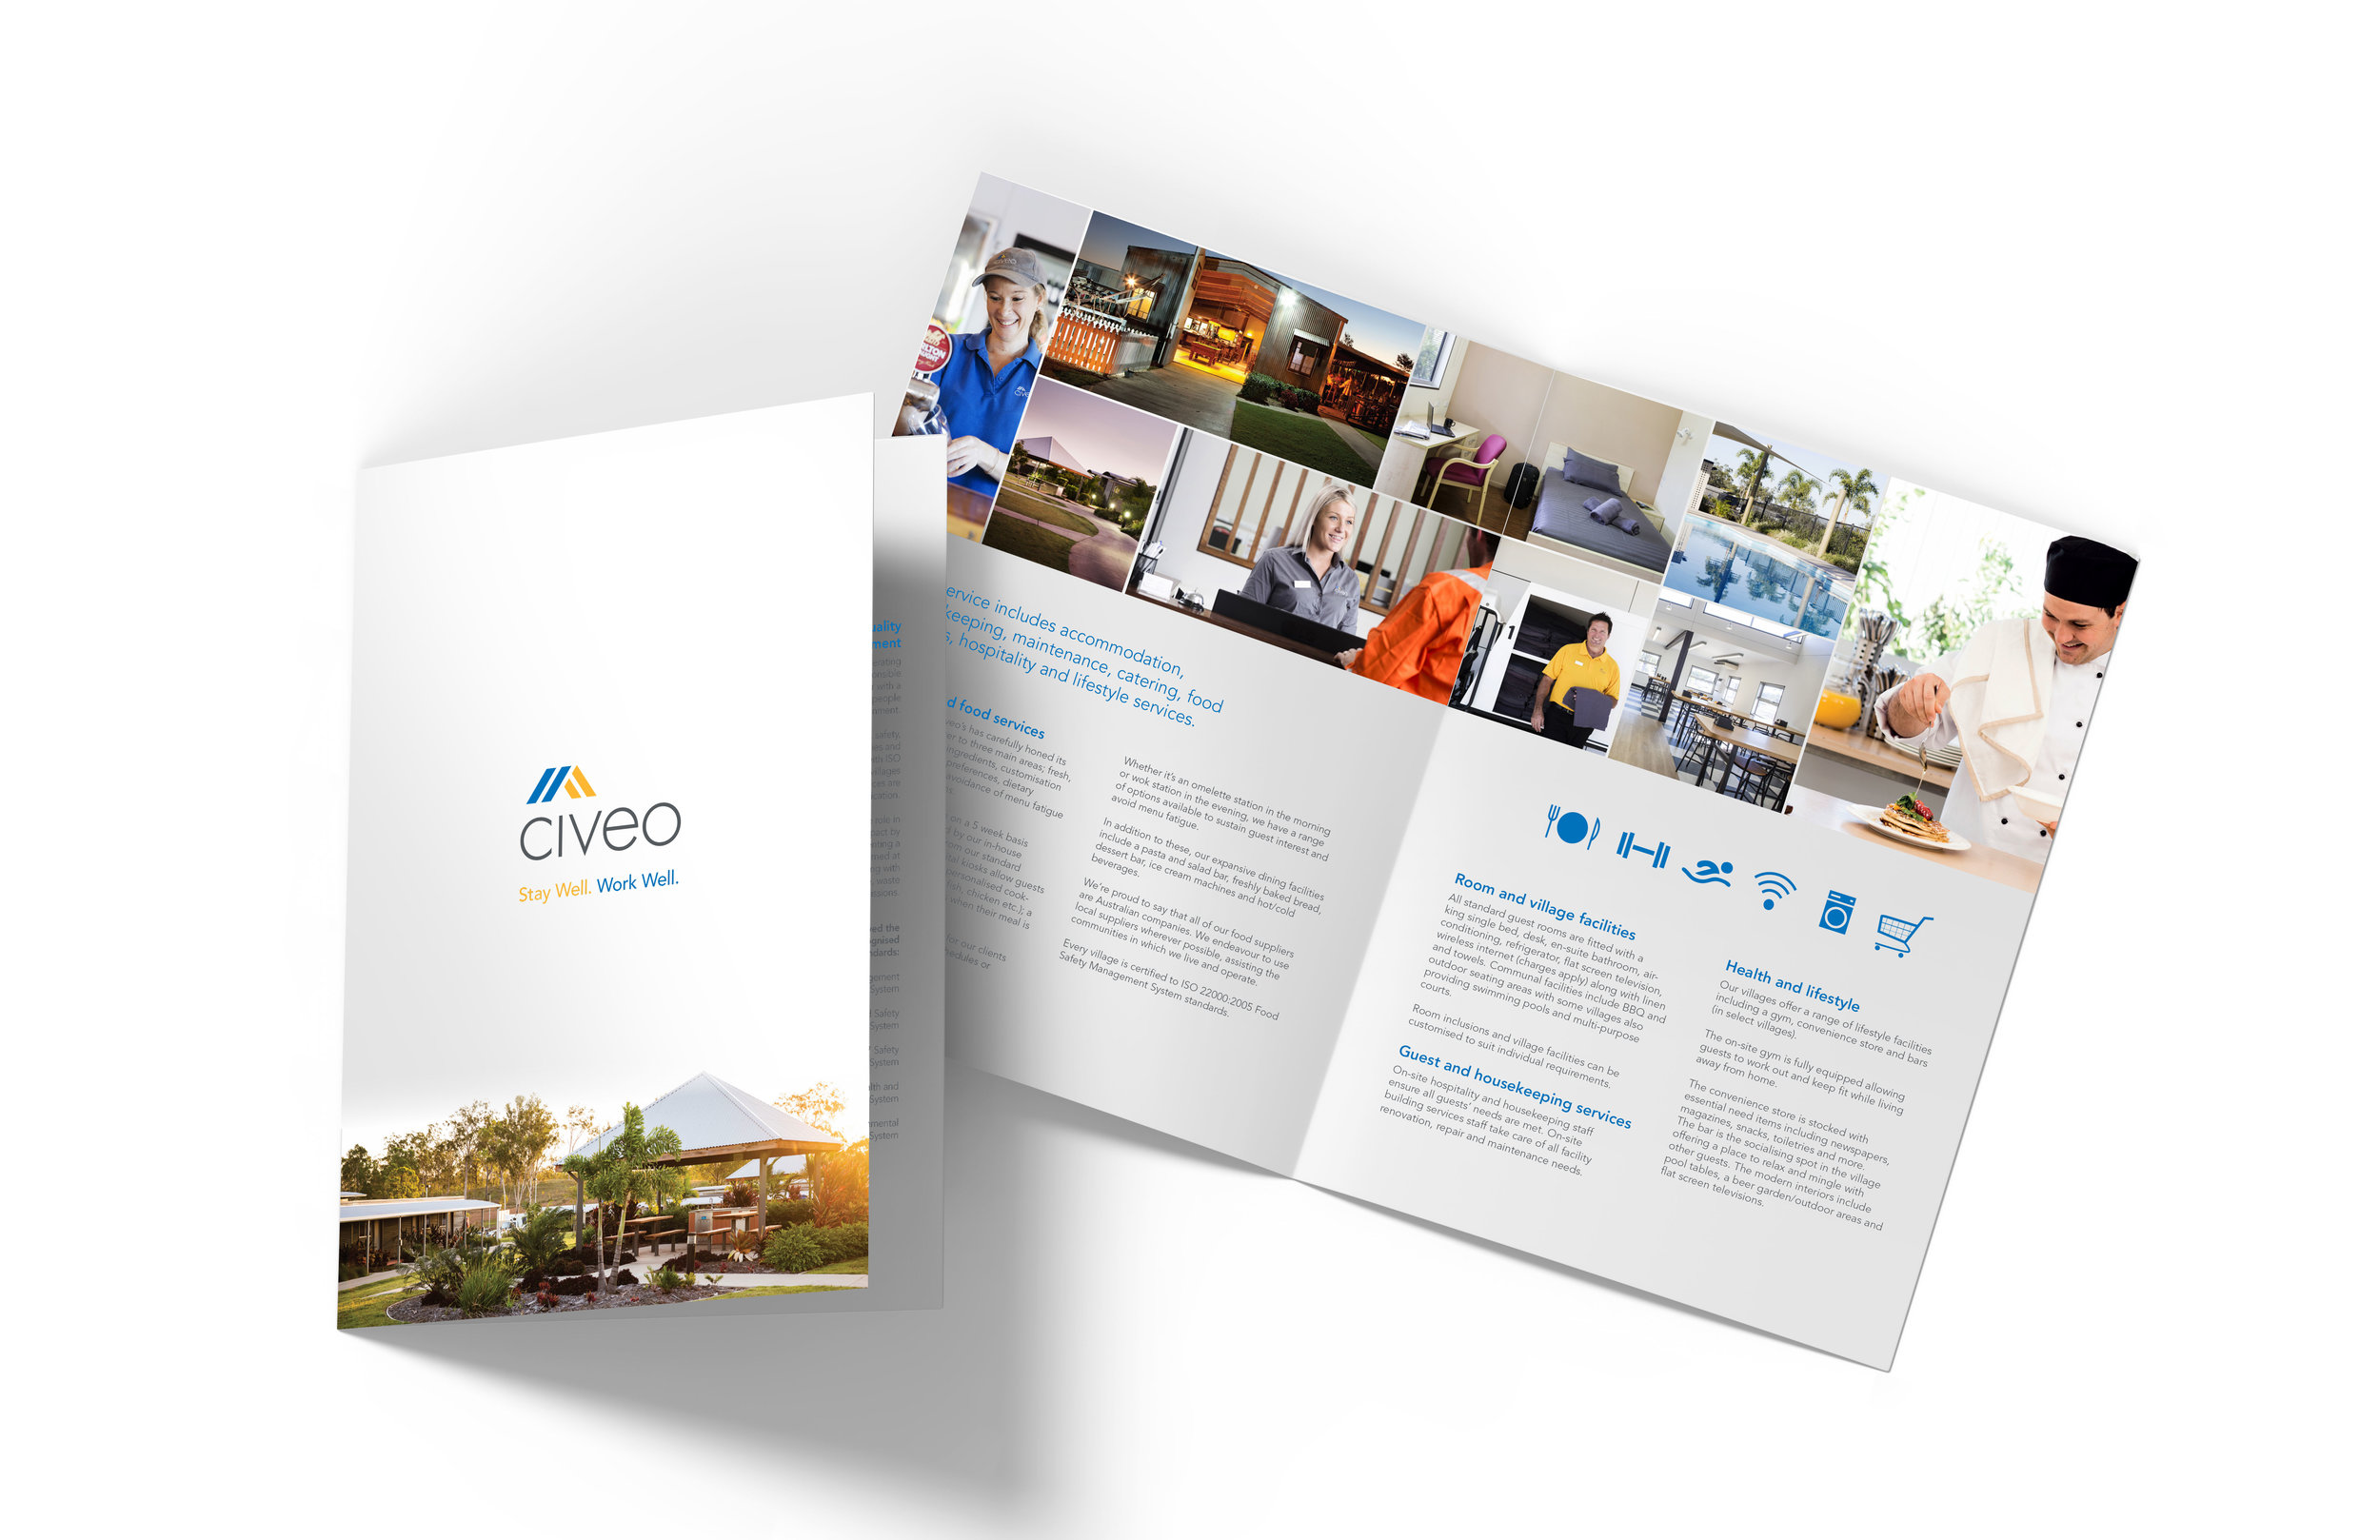 Civeo Brochure Sample  - Frankly Creating